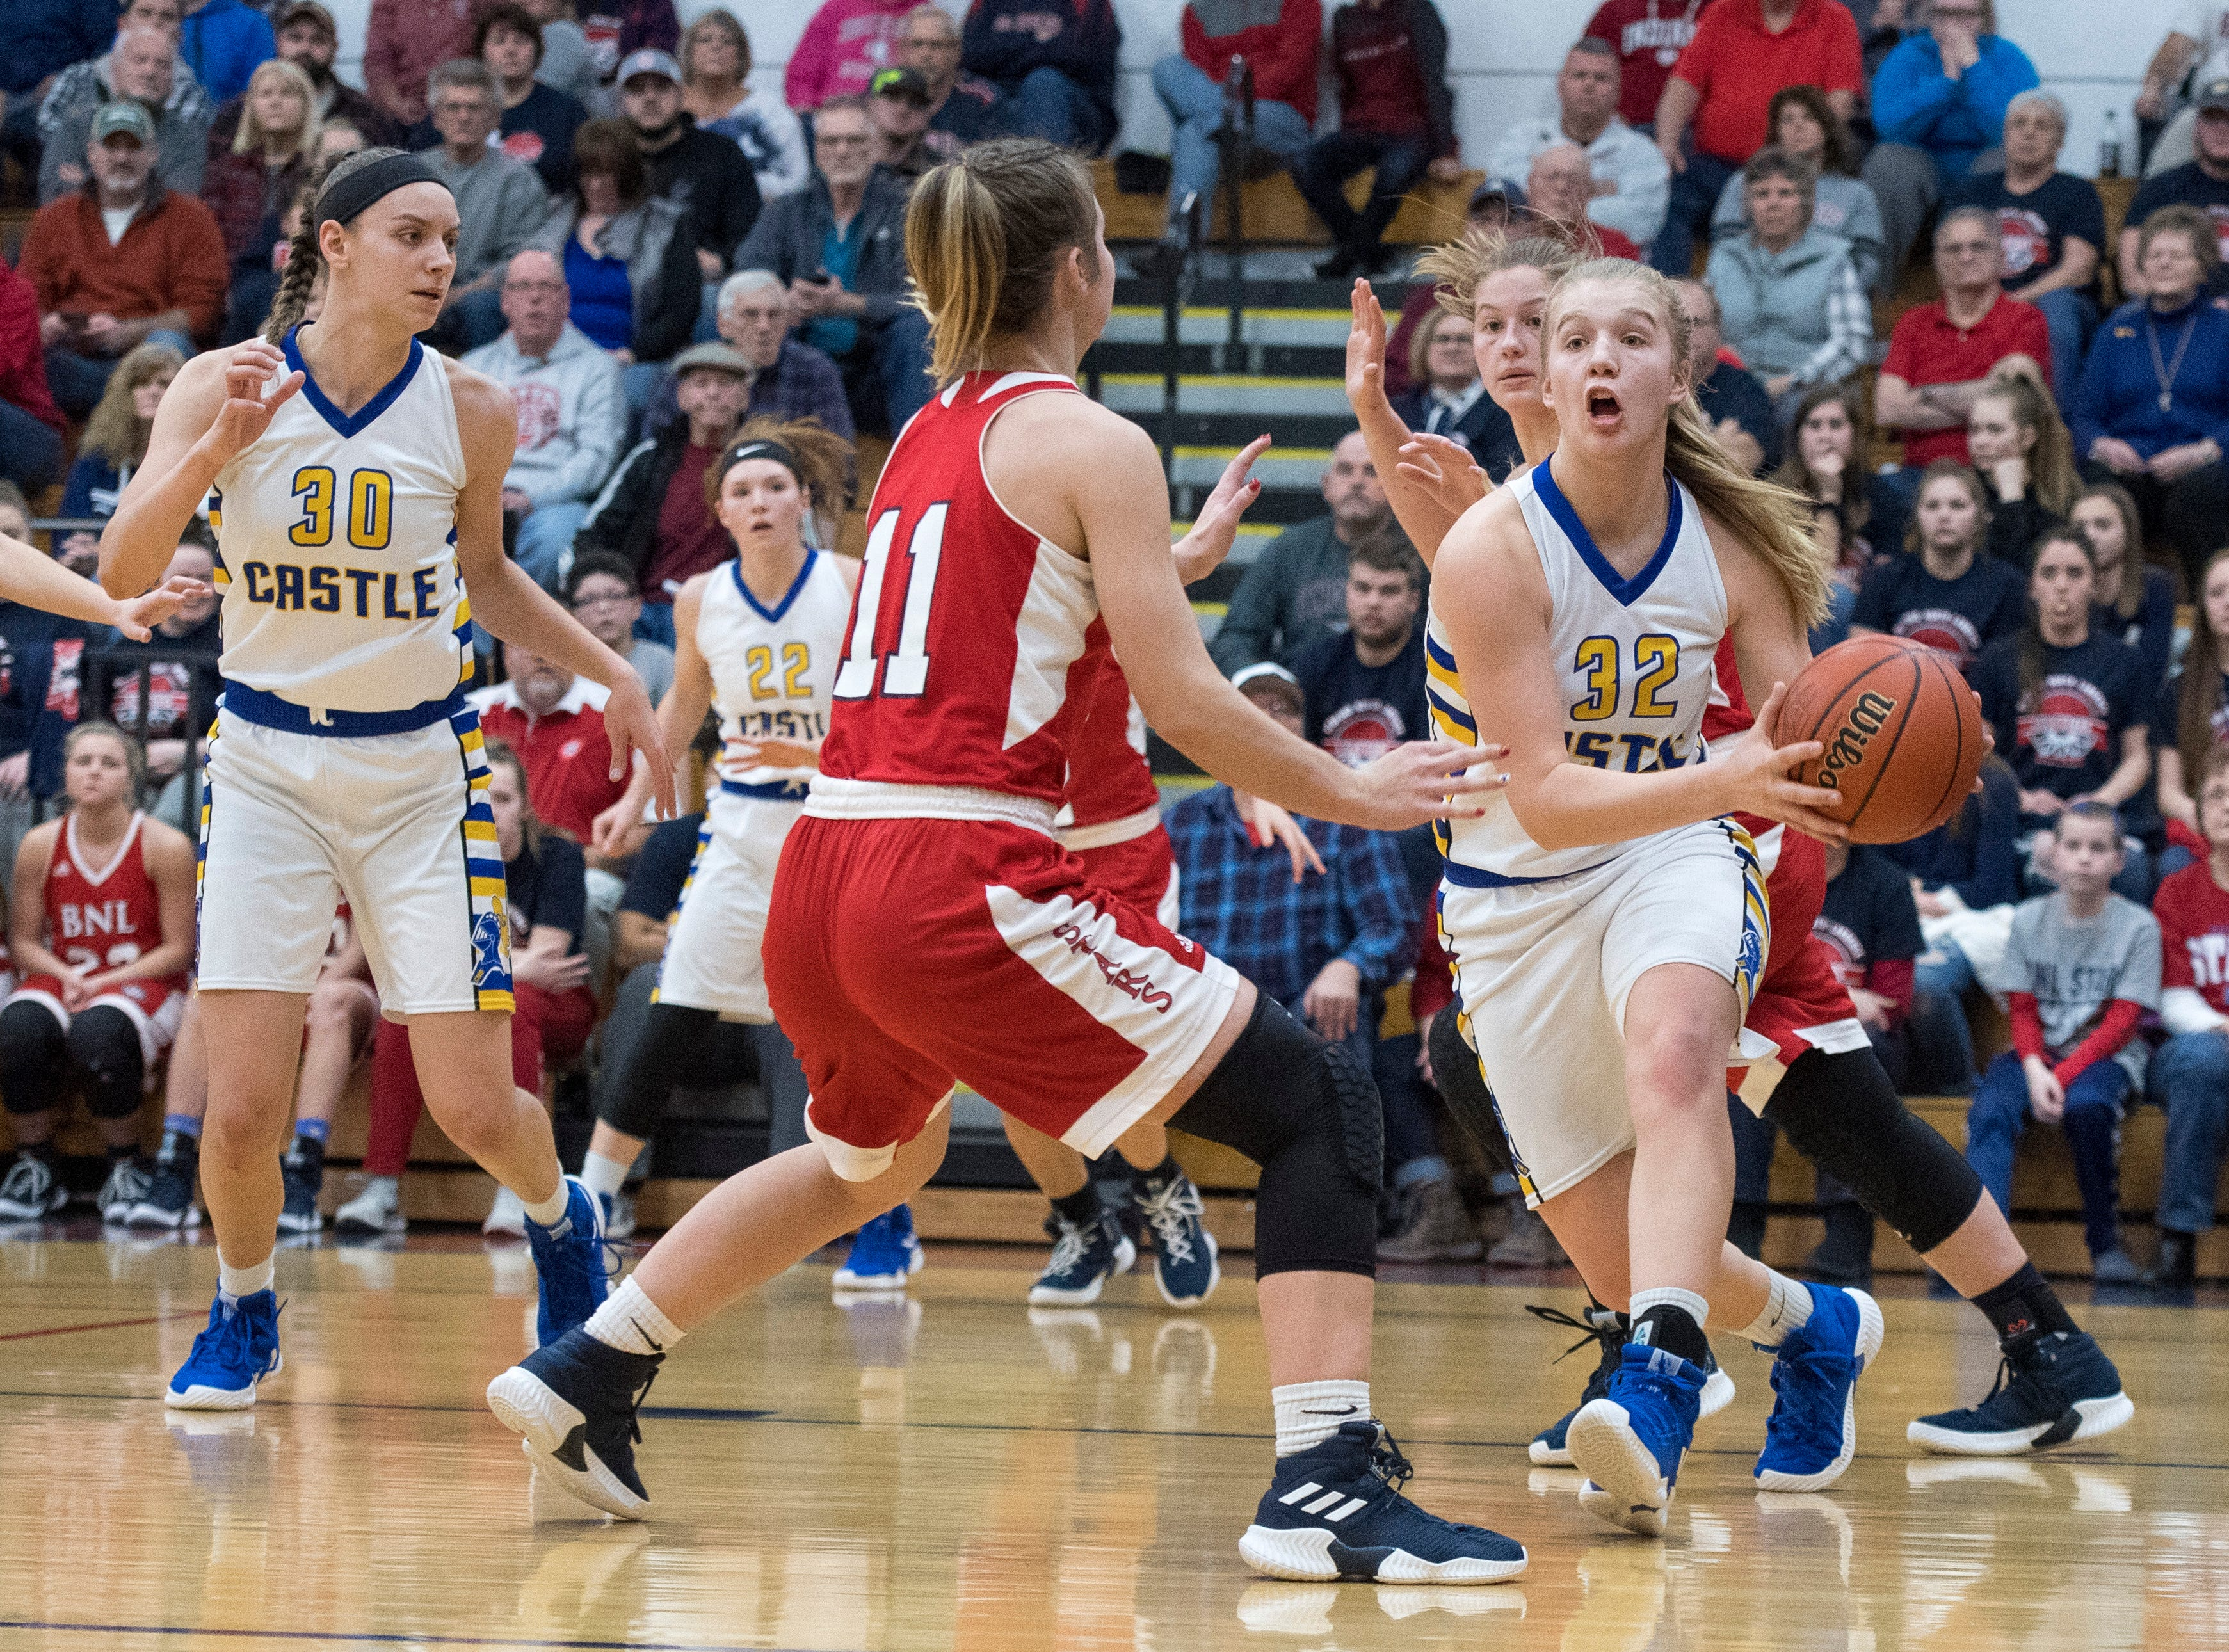 Castle's Natalie Niehaus (32) passes the ball during the  IHSAA Girls Basketball Class 4A Regional Championship game against the Bedford North Lawrence Lady Stars at the Stars Field House in Bedford, Ind. Saturday, Feb. 9, 2019.